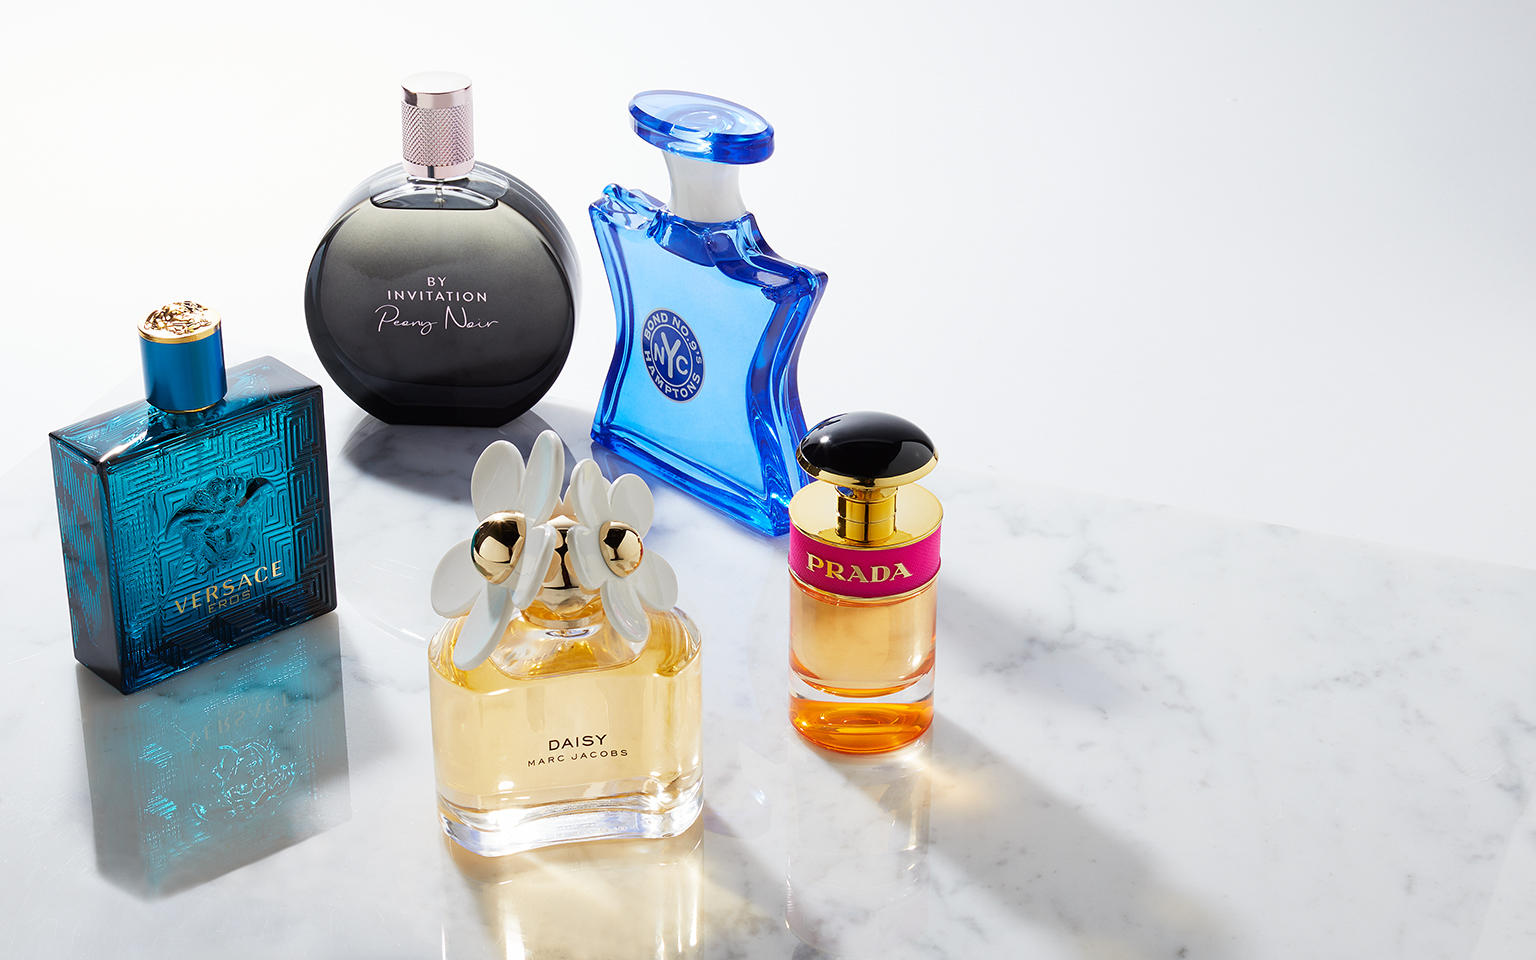 Lancome fragrance bottles